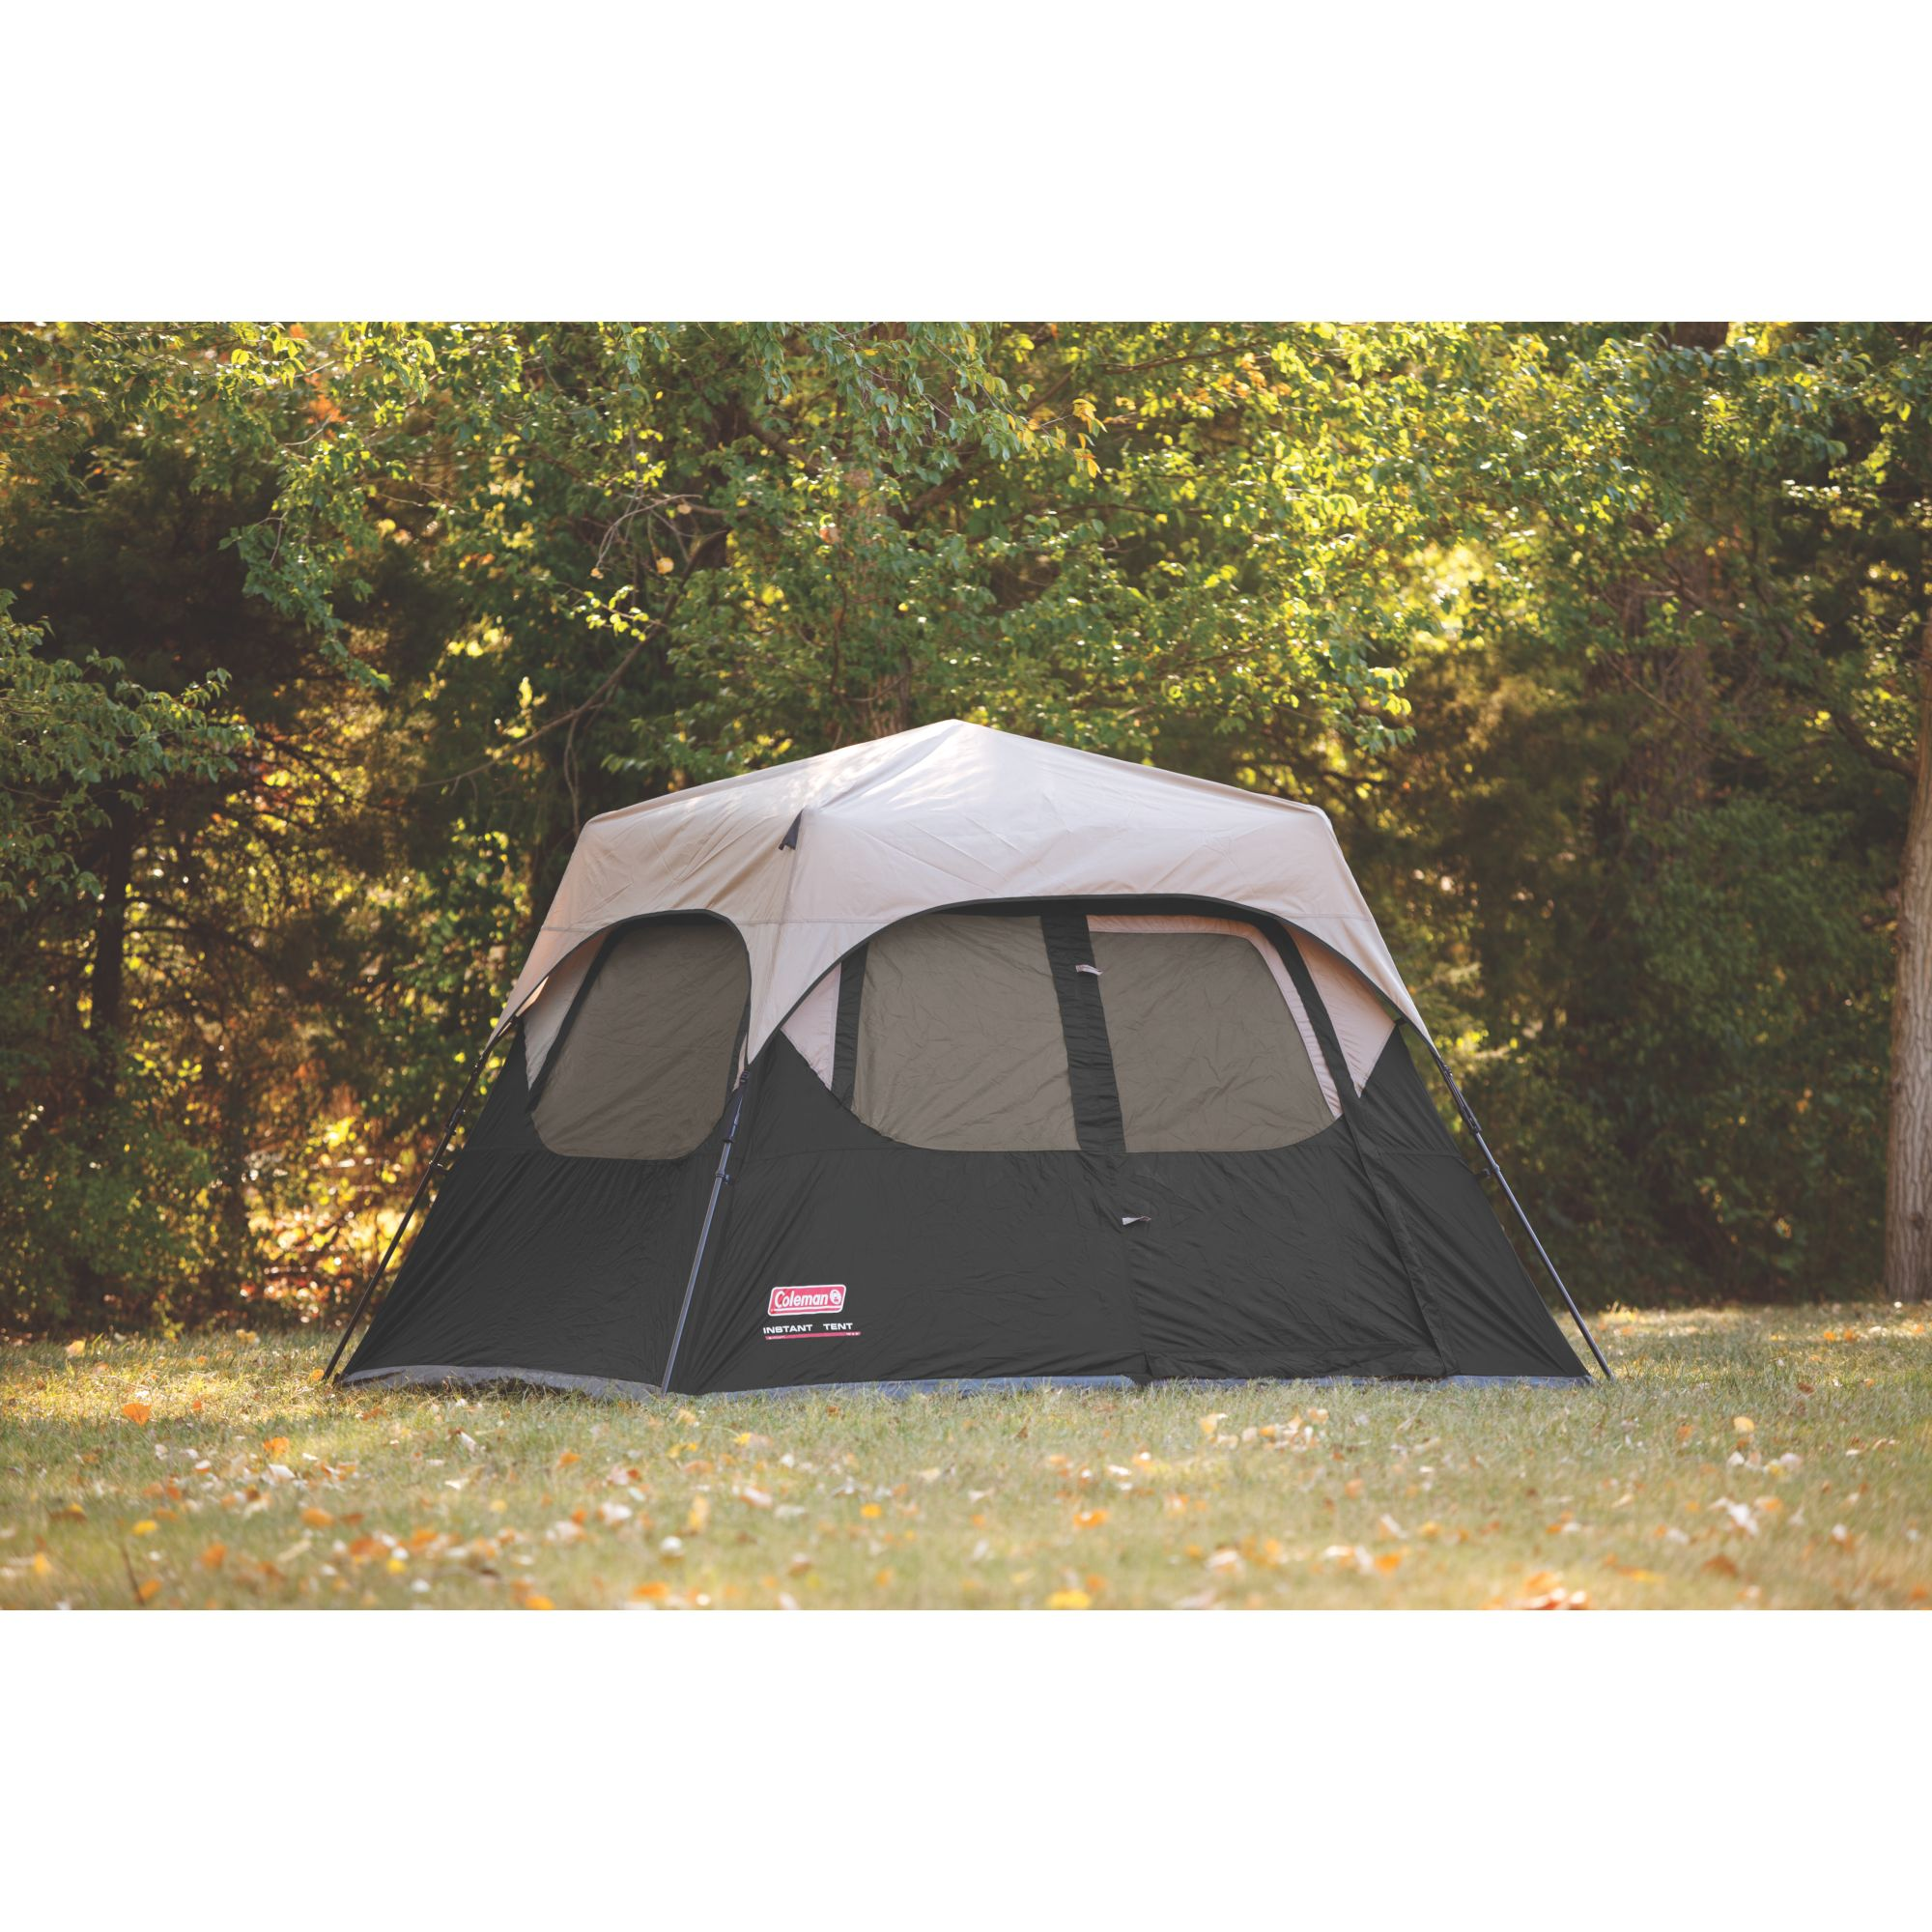 famil cabin bushnell shield picture cabins p camping instant tent person outdoor of room series